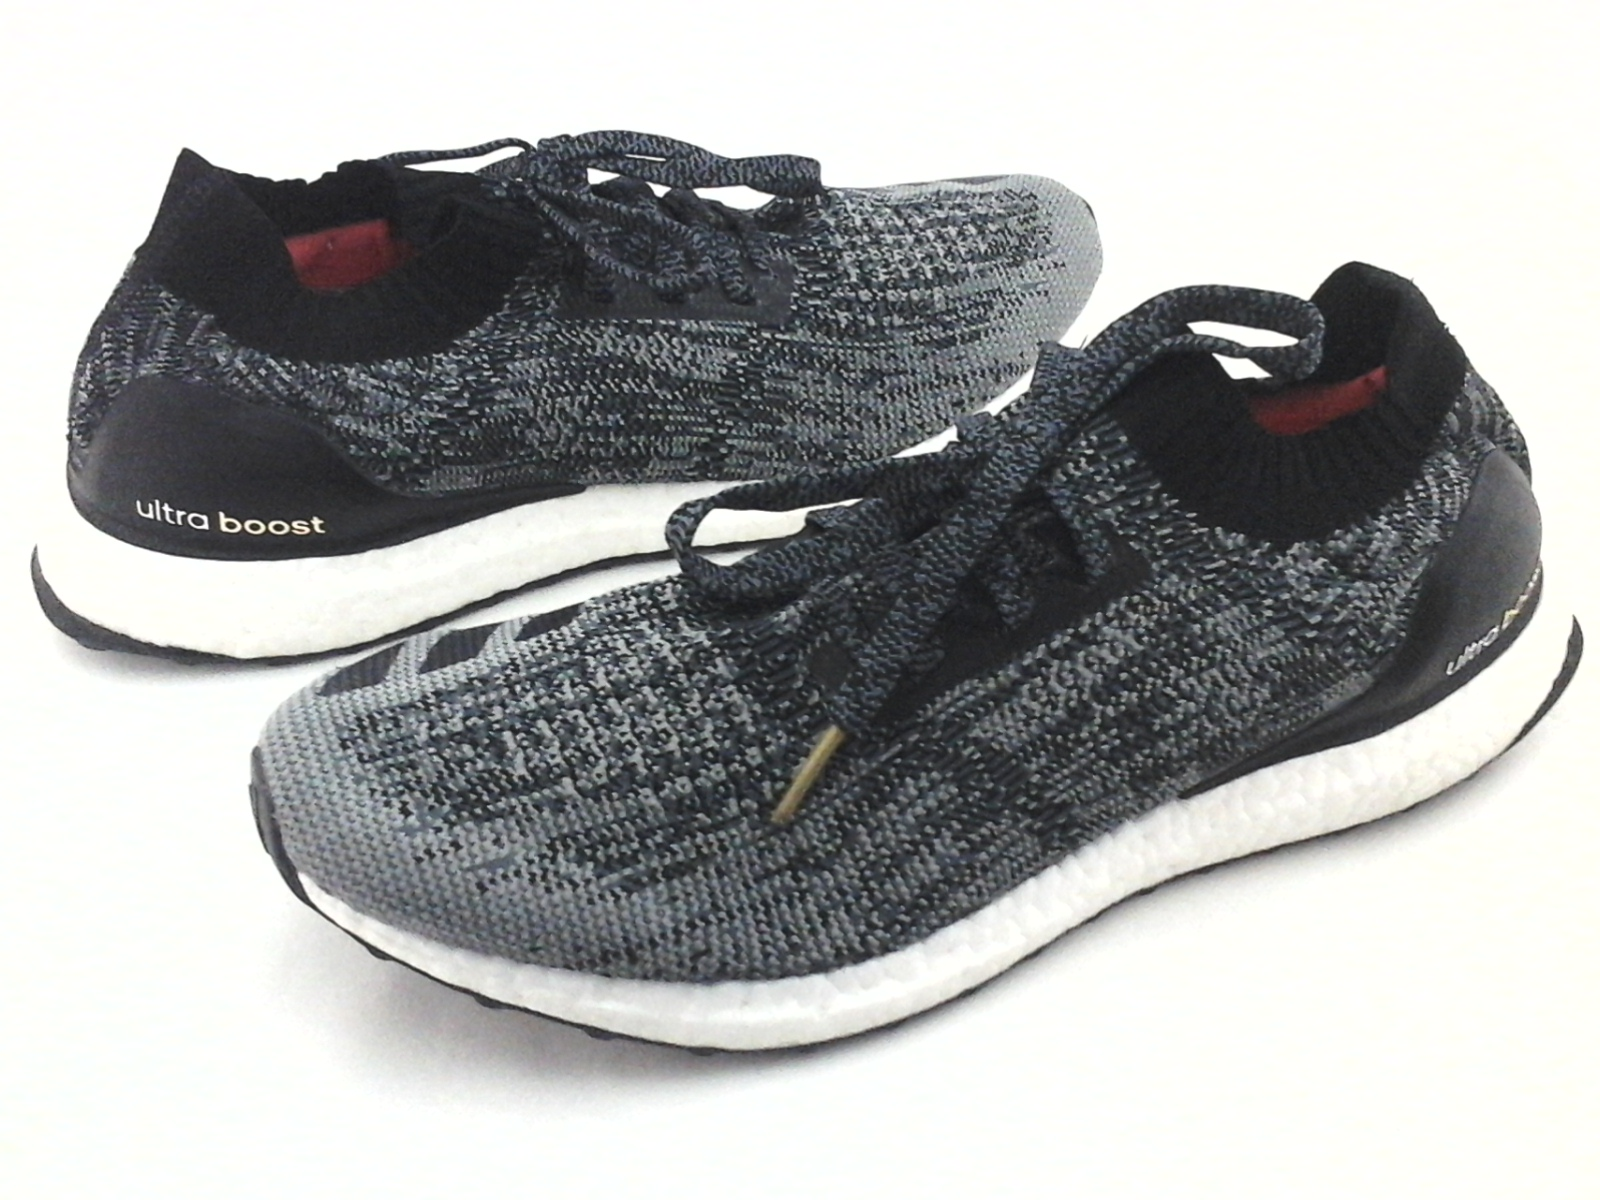 15adcb111dfd5 ADIDAS UltraBoost Running Shoes Black Knit Uncaged BB3900 Mens US 12.5  47  1 3